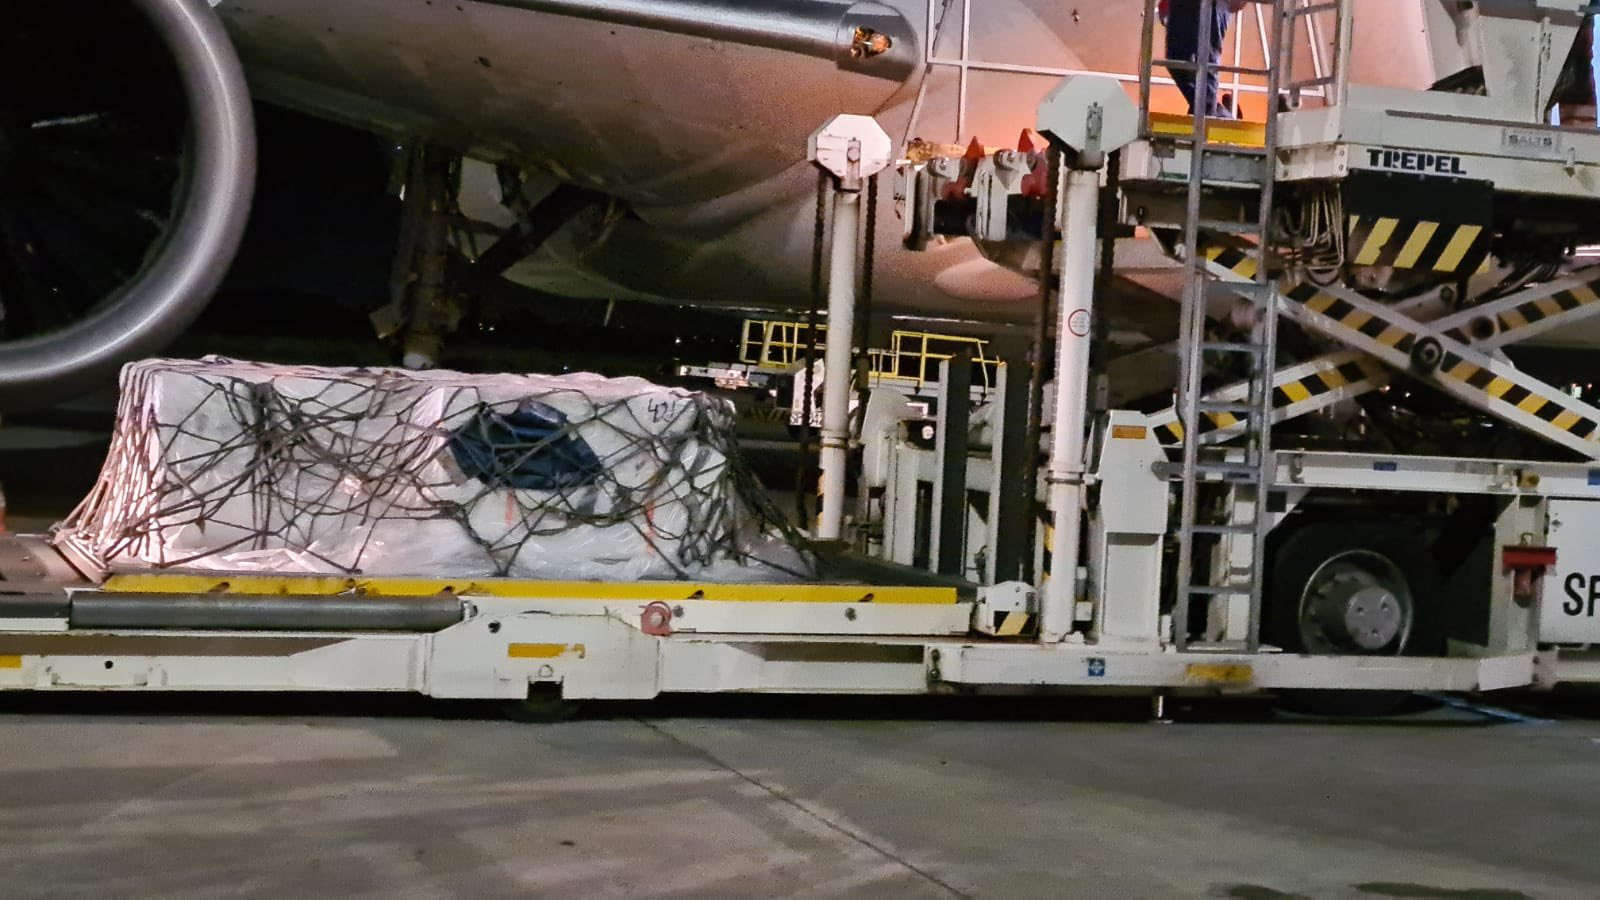 The first batch of the 80 000 doses of the Johnson & Johnson vaccine are offloadeThe first batch of the 80 000 doses of the Johnson & Johnson vaccine are offloaded at OR Tambo airport.d at OR Tambo airport.